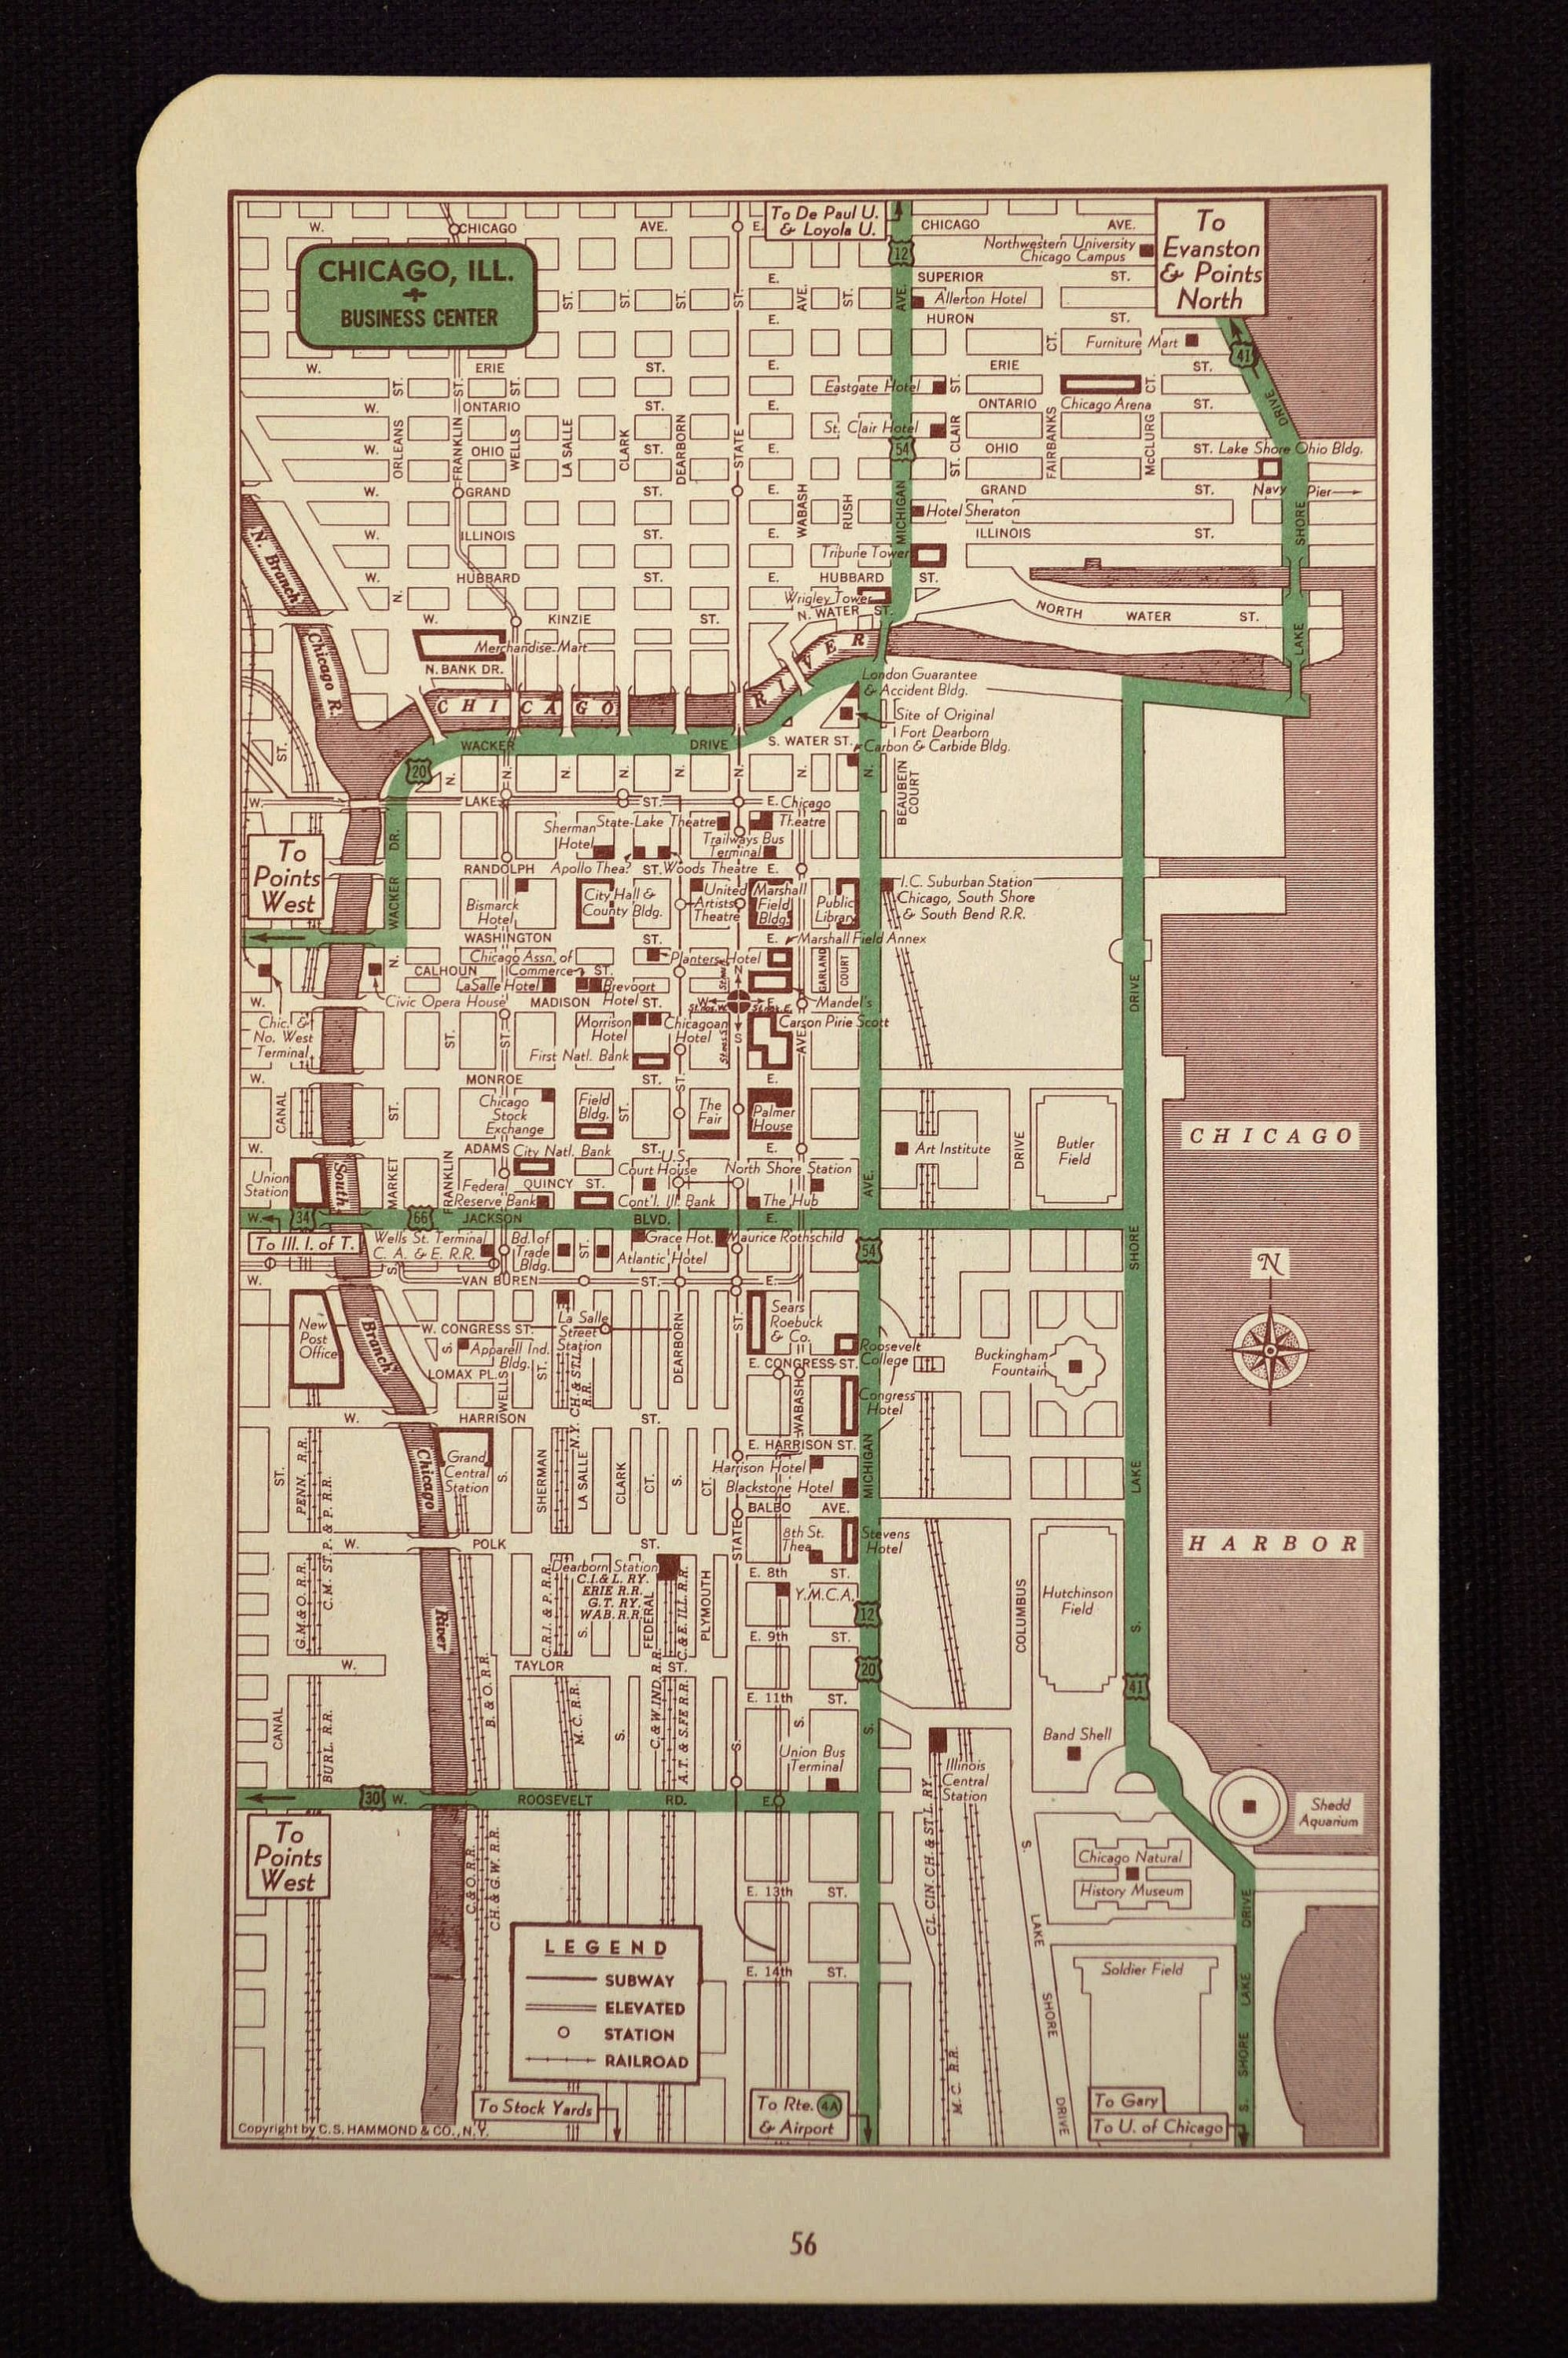 Chicago Map Chicago Street Map Illinois Wall Art Original | Map Wall for Chicago Map Wall Art (Image 6 of 20)